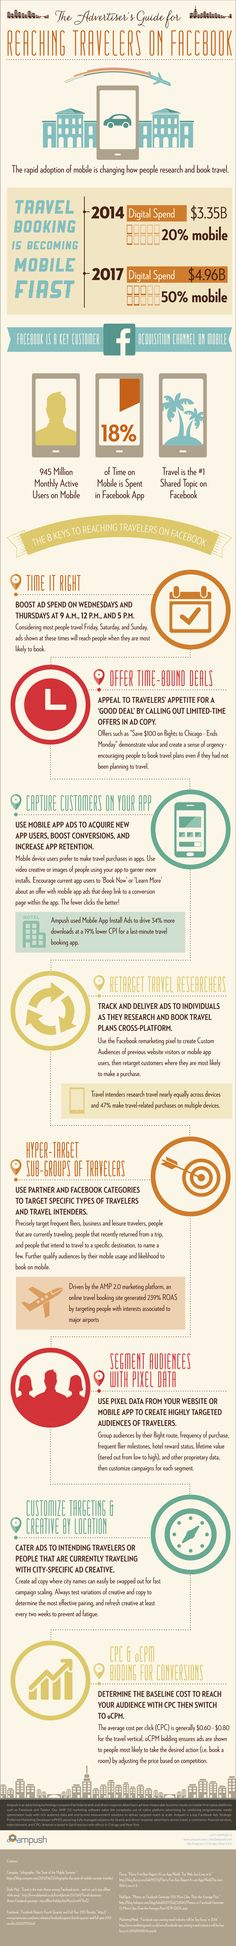 How to reach travelers on Facebook